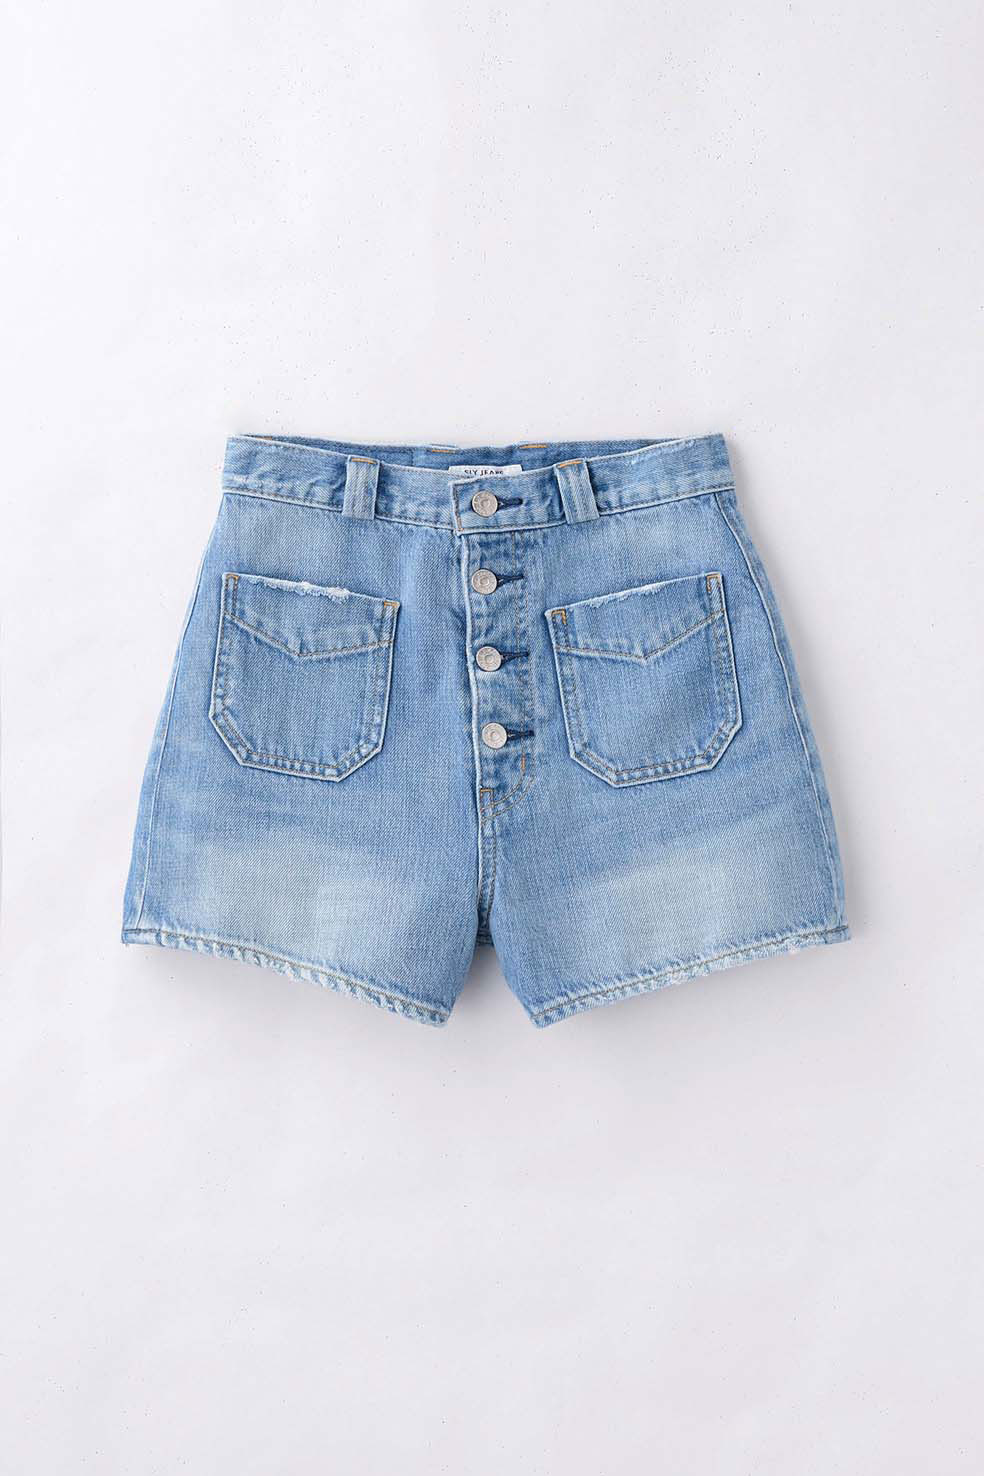 SLY-SLYJEANS-SUMMERDENIM